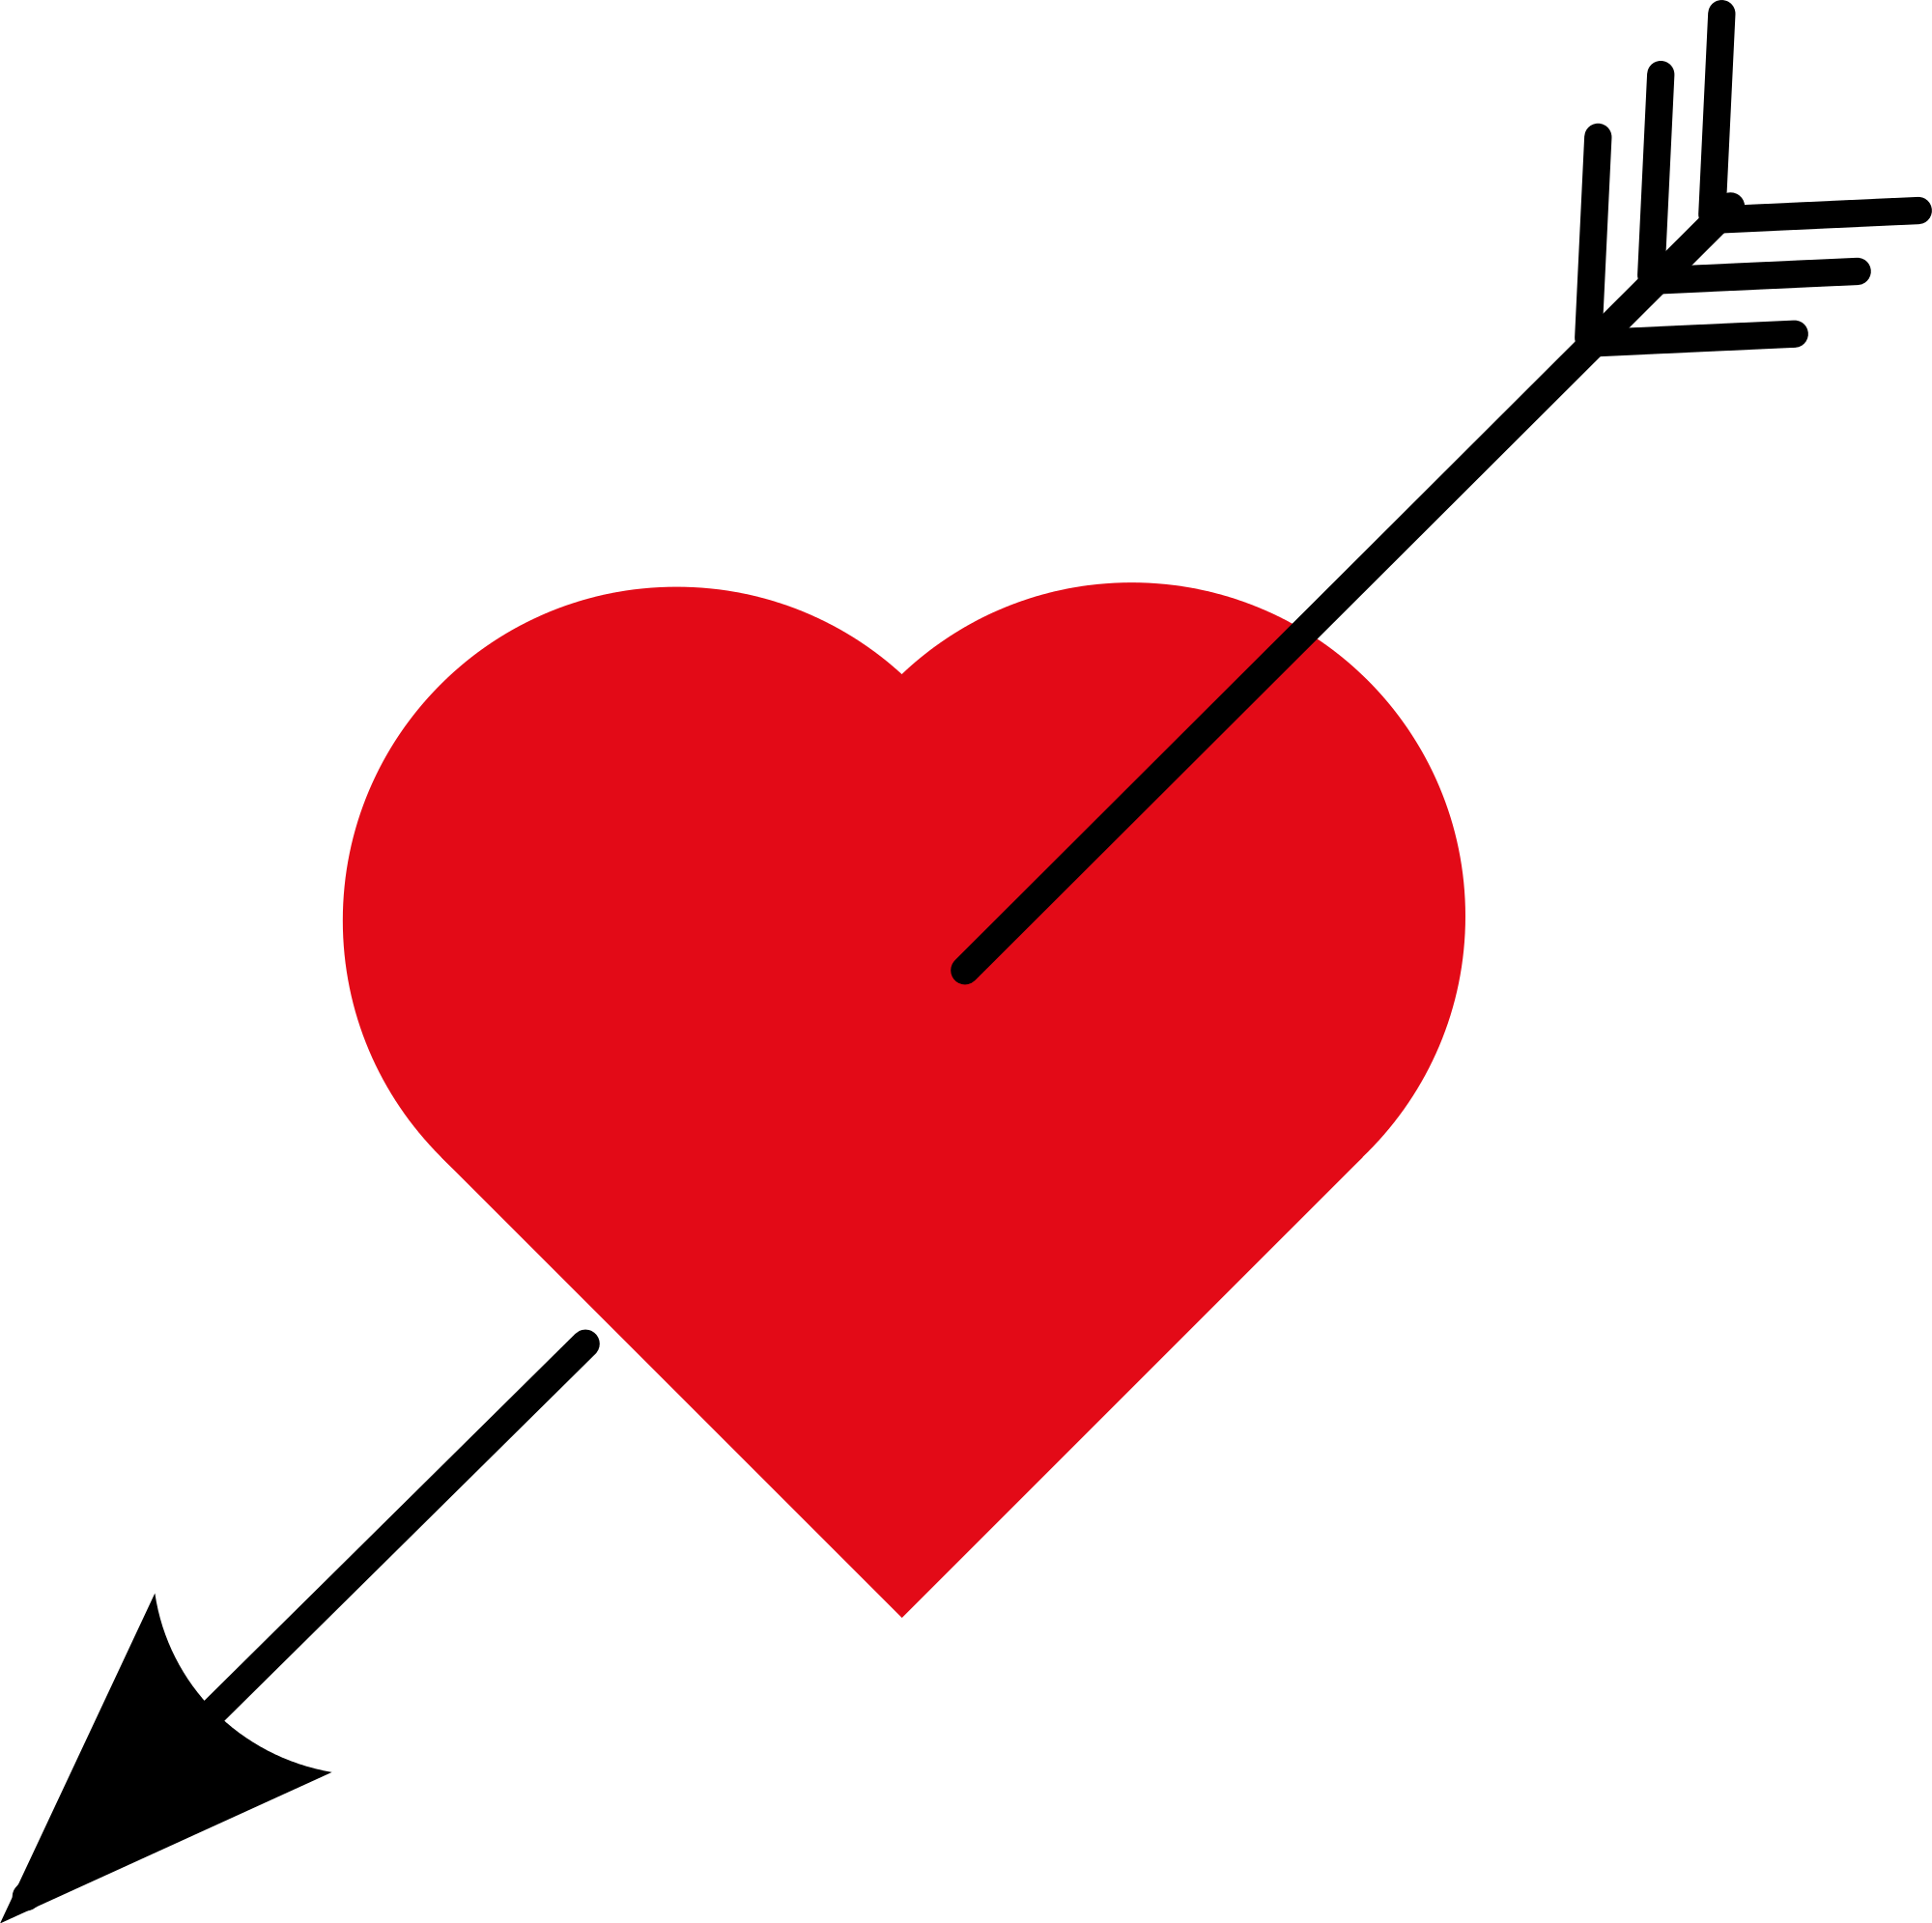 Heart with arrow clipart black picture freeuse download File:Love Heart with arrow.svg - Wikimedia Commons picture freeuse download